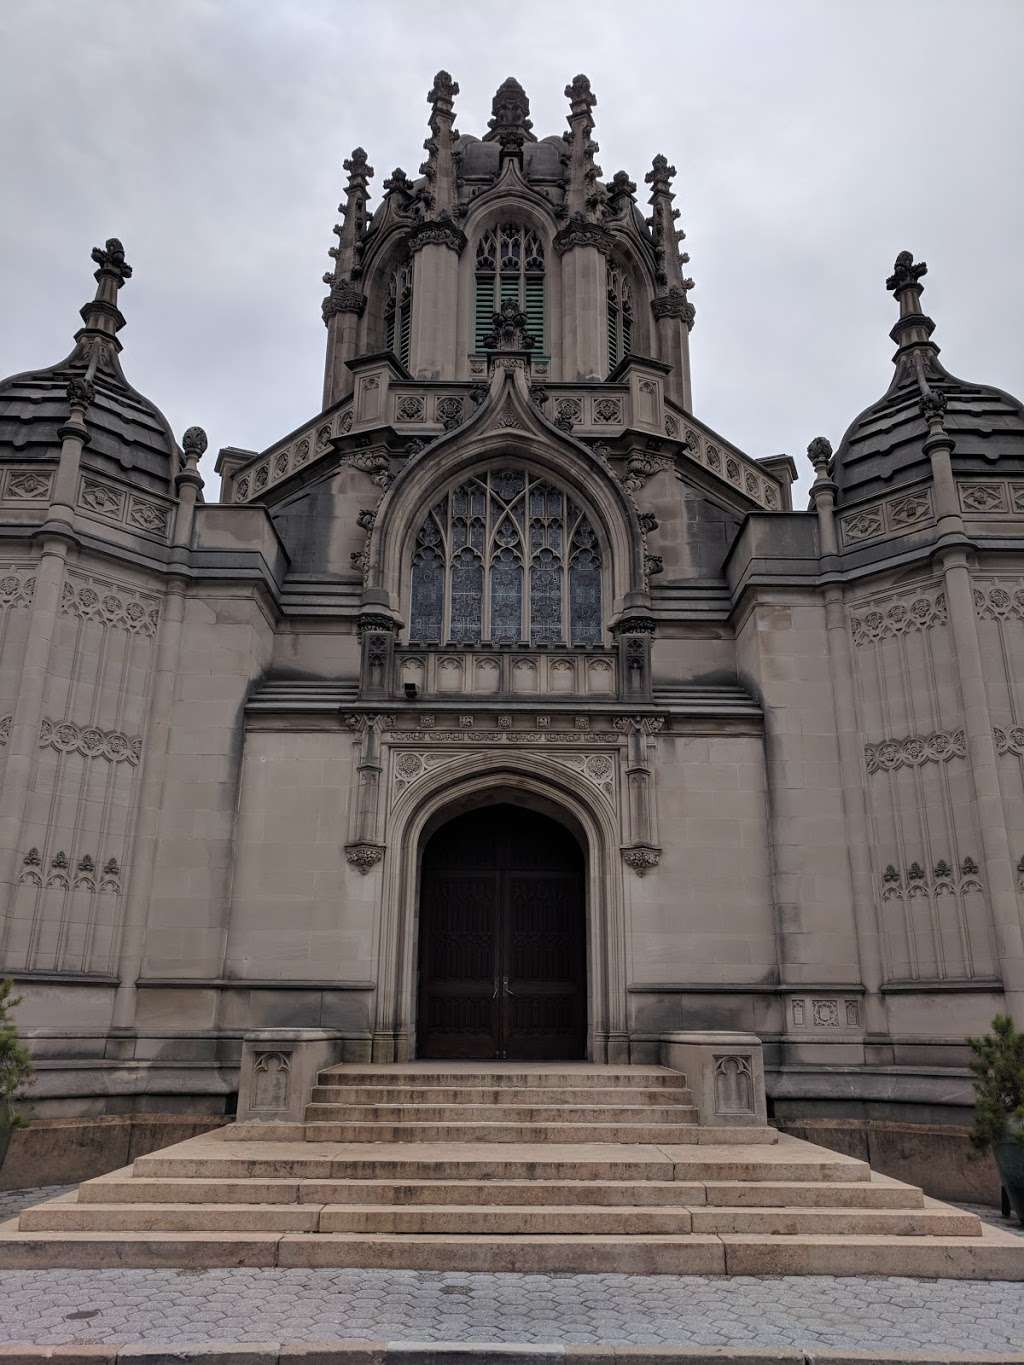 Green-Wood Cemetery Chapel - cemetery  | Photo 9 of 10 | Address: 500 25th St, Brooklyn, NY 11232, USA | Phone: (718) 768-7300